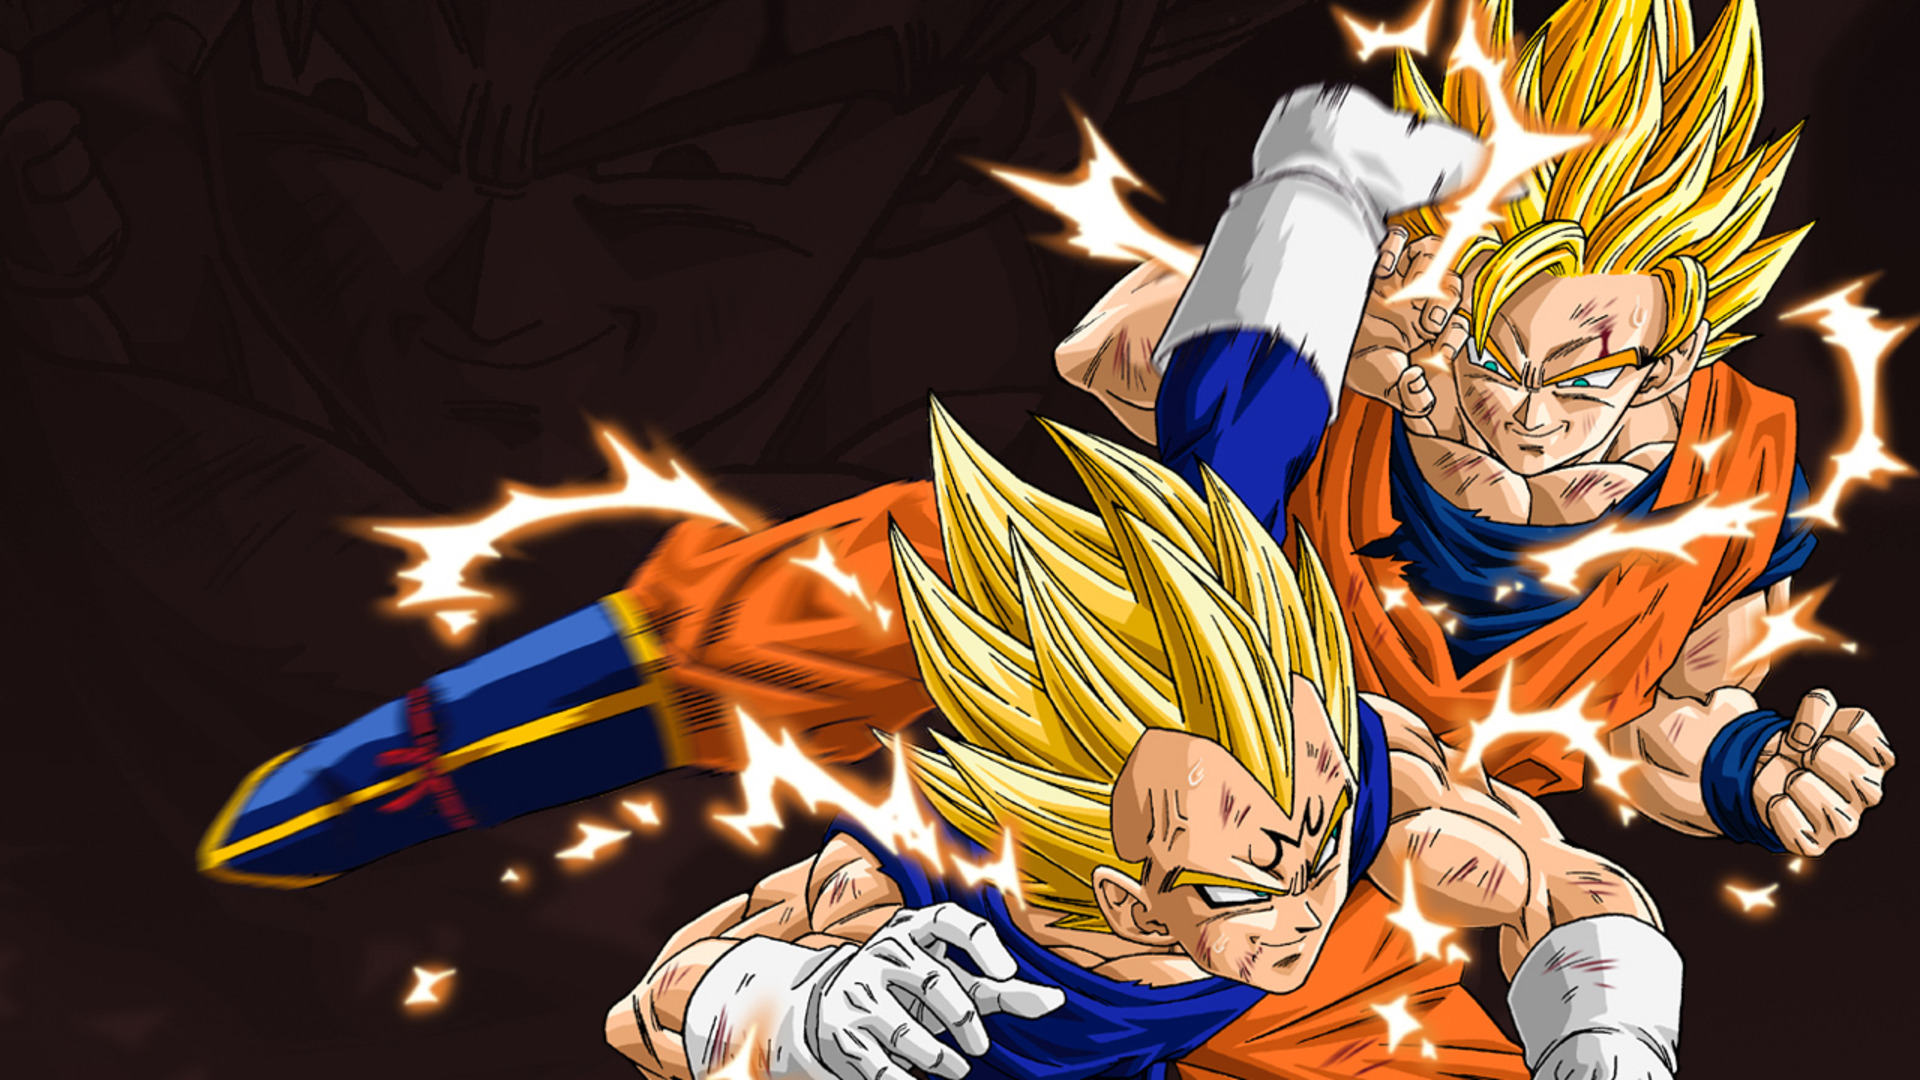 dbz wallpaper 1920x1080 59368